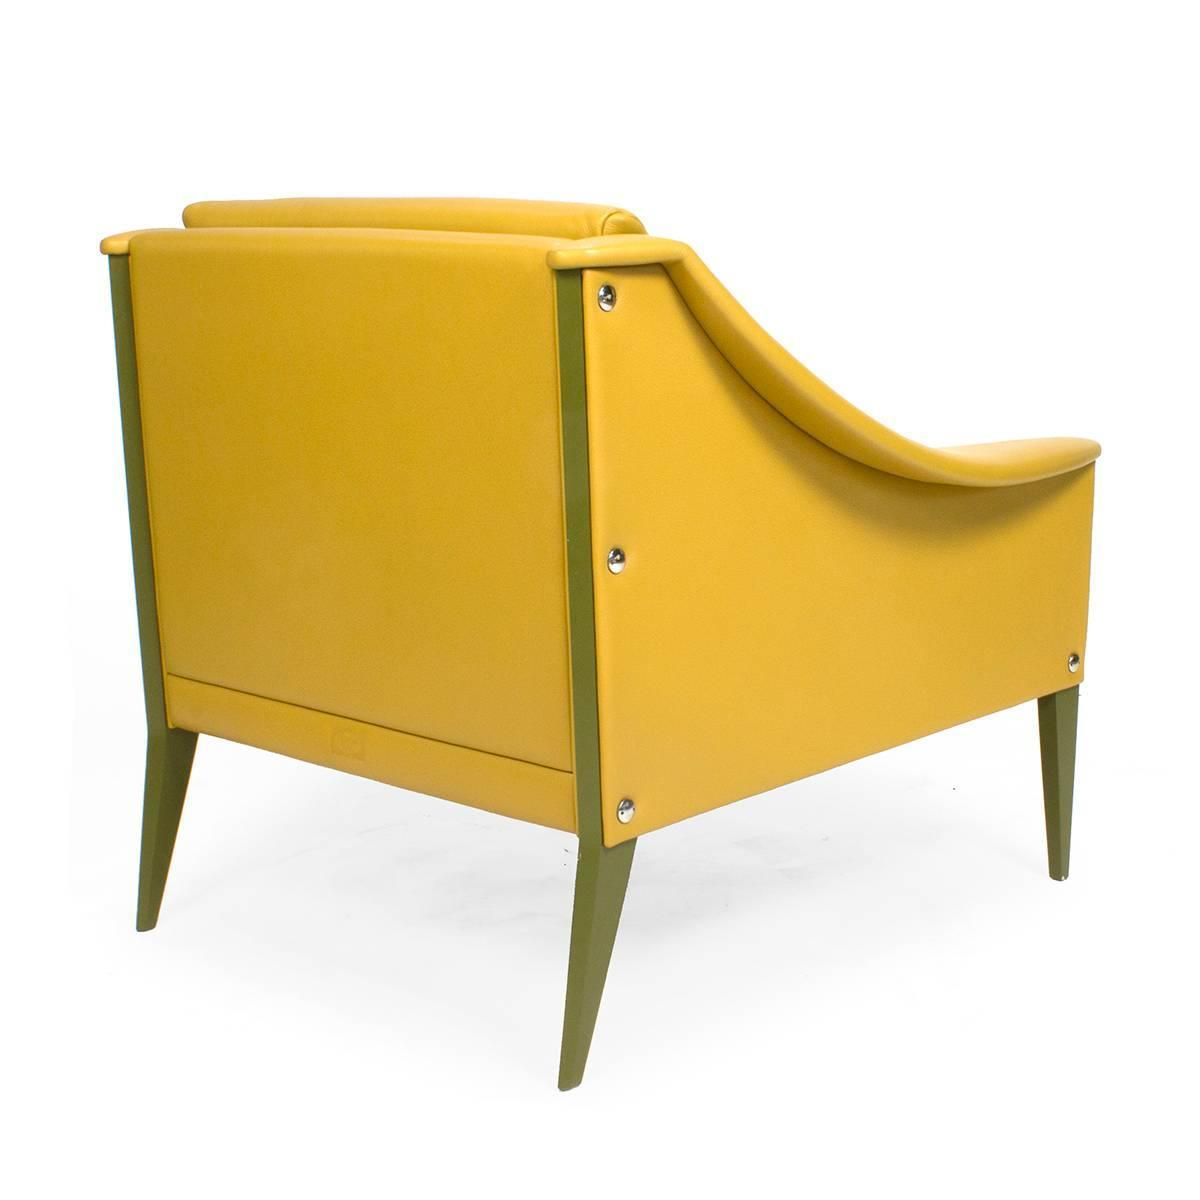 Yellow Leather Poltrona Frau Dezza Armchair By Gio Ponti